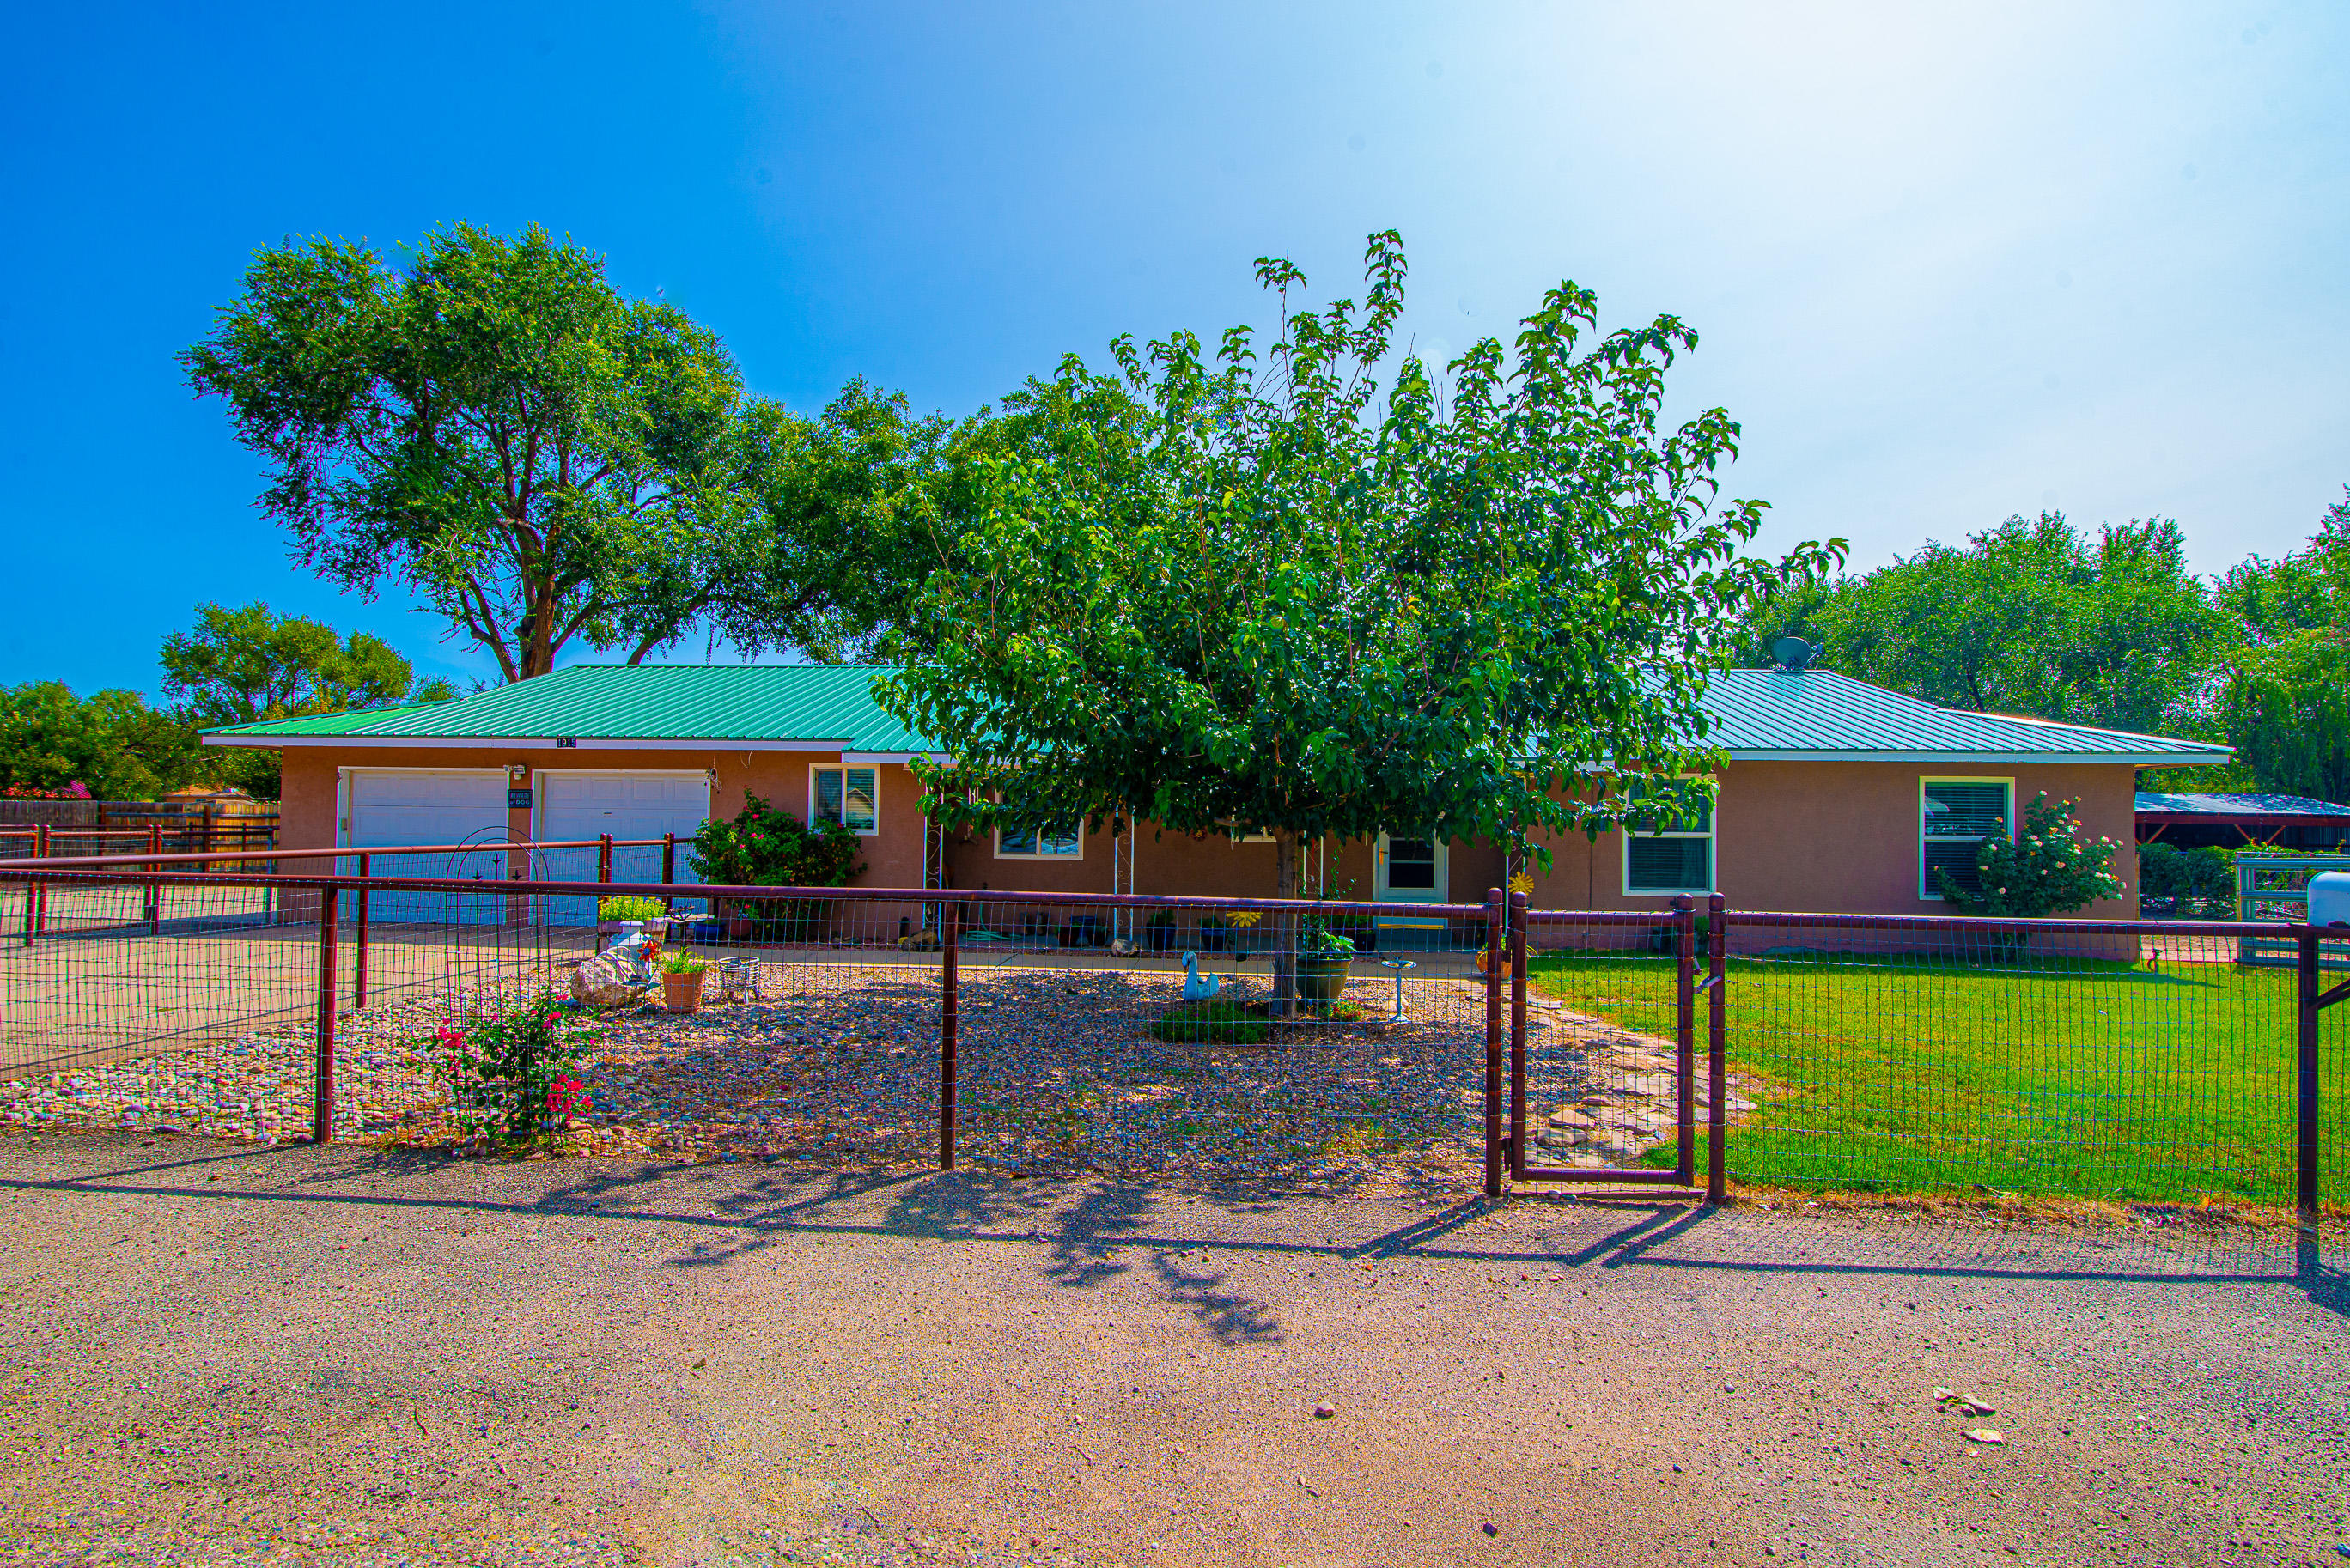 Well maintained home on 1/2 acre in a quiet yet convenient location w/quick access to the park, library, multi-use paths, community center, tennis courts and rodeo arena. This Bosque Farms beauty features 3 bedrooms/3 bathrooms, large family room with wood burning insert, refrigerated air, large pantry, laundry room and mud room with half bathroom.  Oversized garage can accommodate full sized truck, beautifully landscaped front and back w/backyard access, irrigation well with sprinklers and a storage building w/carport for all your extra toys. The covered patio is private and perfect for relaxing. Pipe rail area in the back for your four legged friends or garden.  Bosque Farms offers an exceptional elementary school. Come take a look...you'll want to move in!